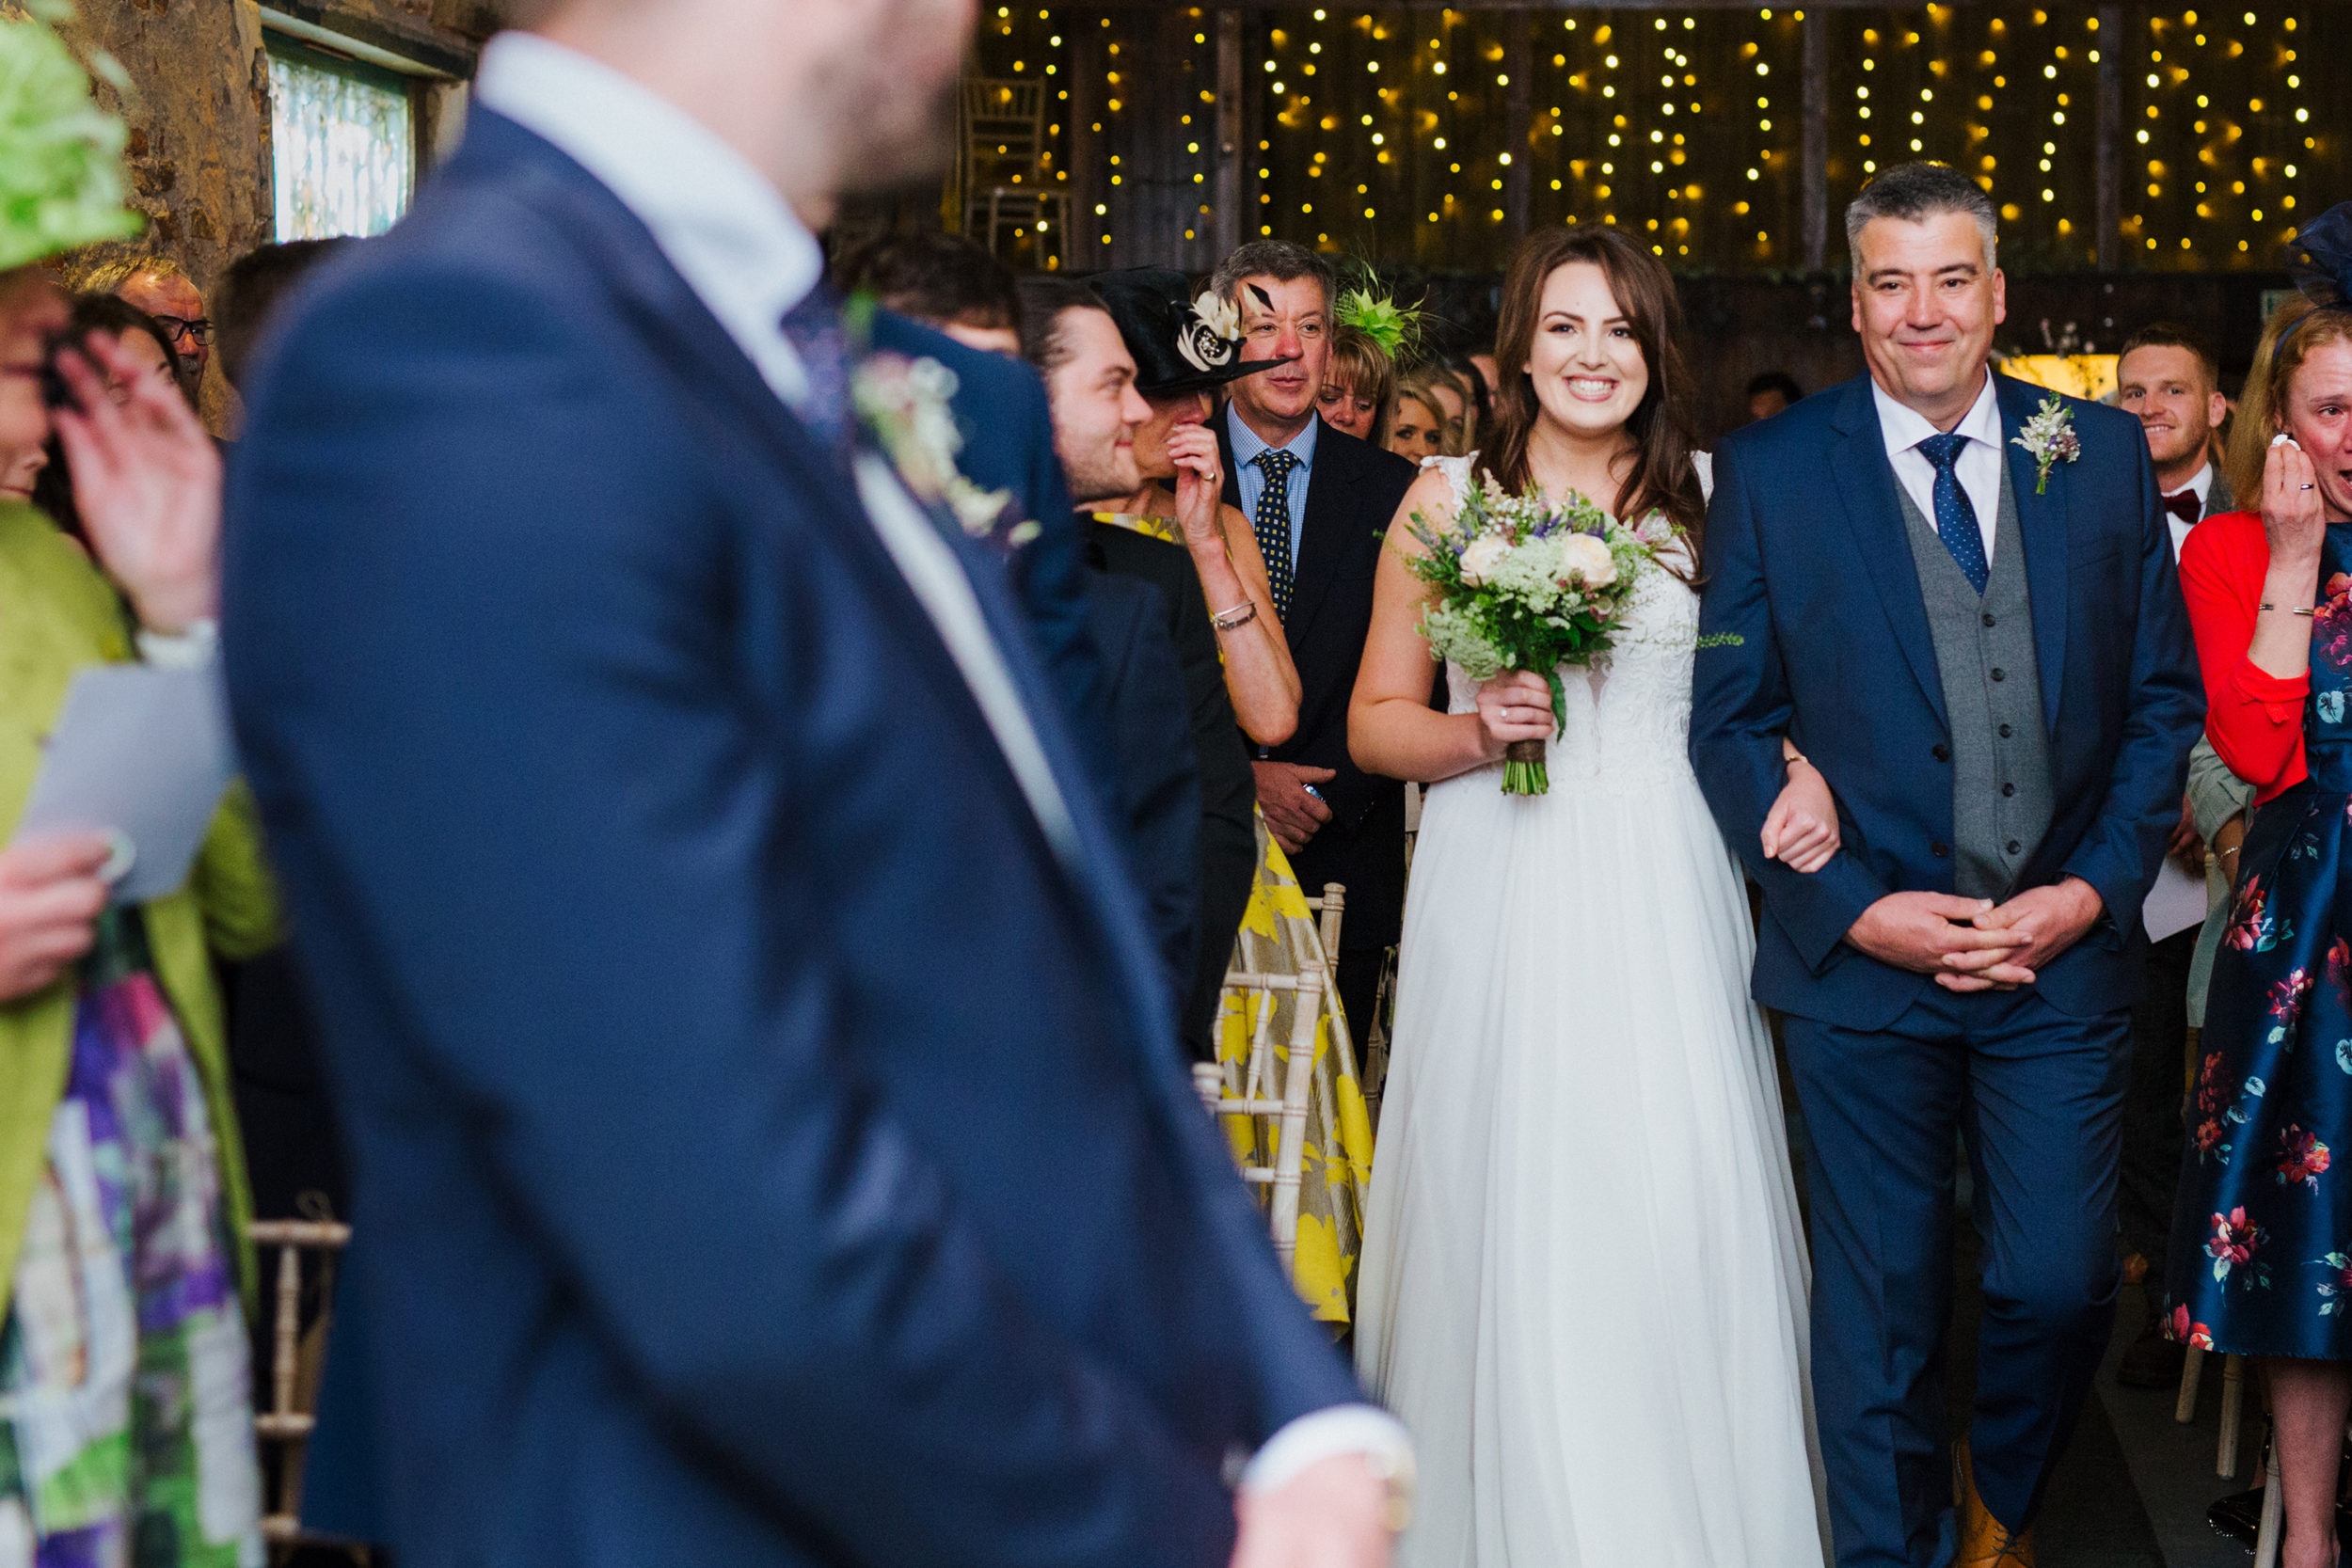 Bride walks down the aisle with her Dad at The Normans in York